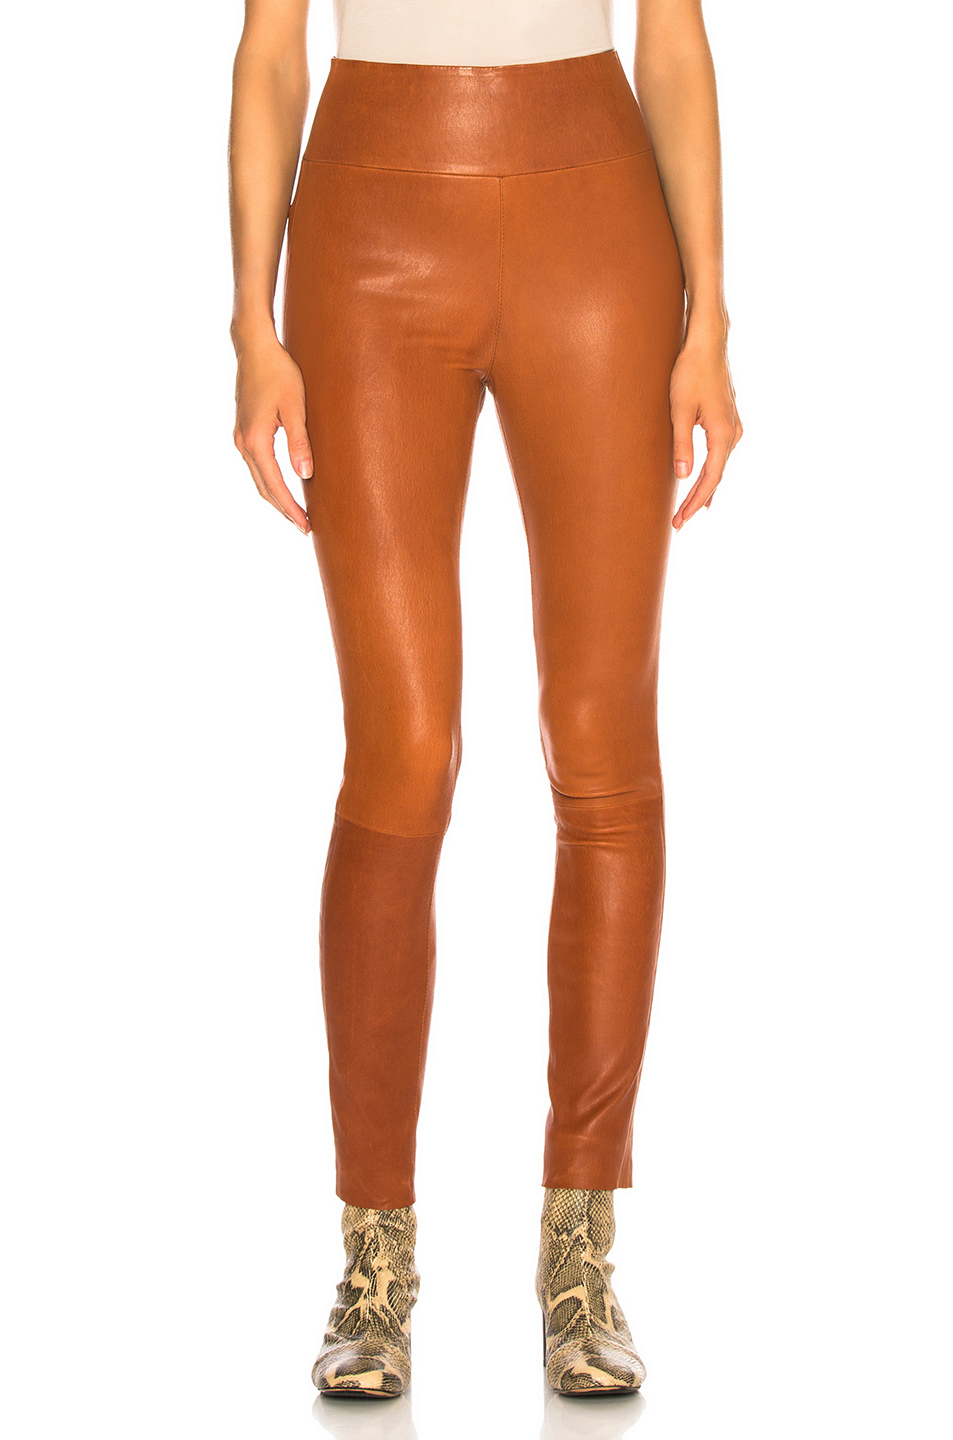 High Waist Ankle Legging by Sprwmn, available on fwrd.com for $925 Olivia Culpo Pants Exact Product